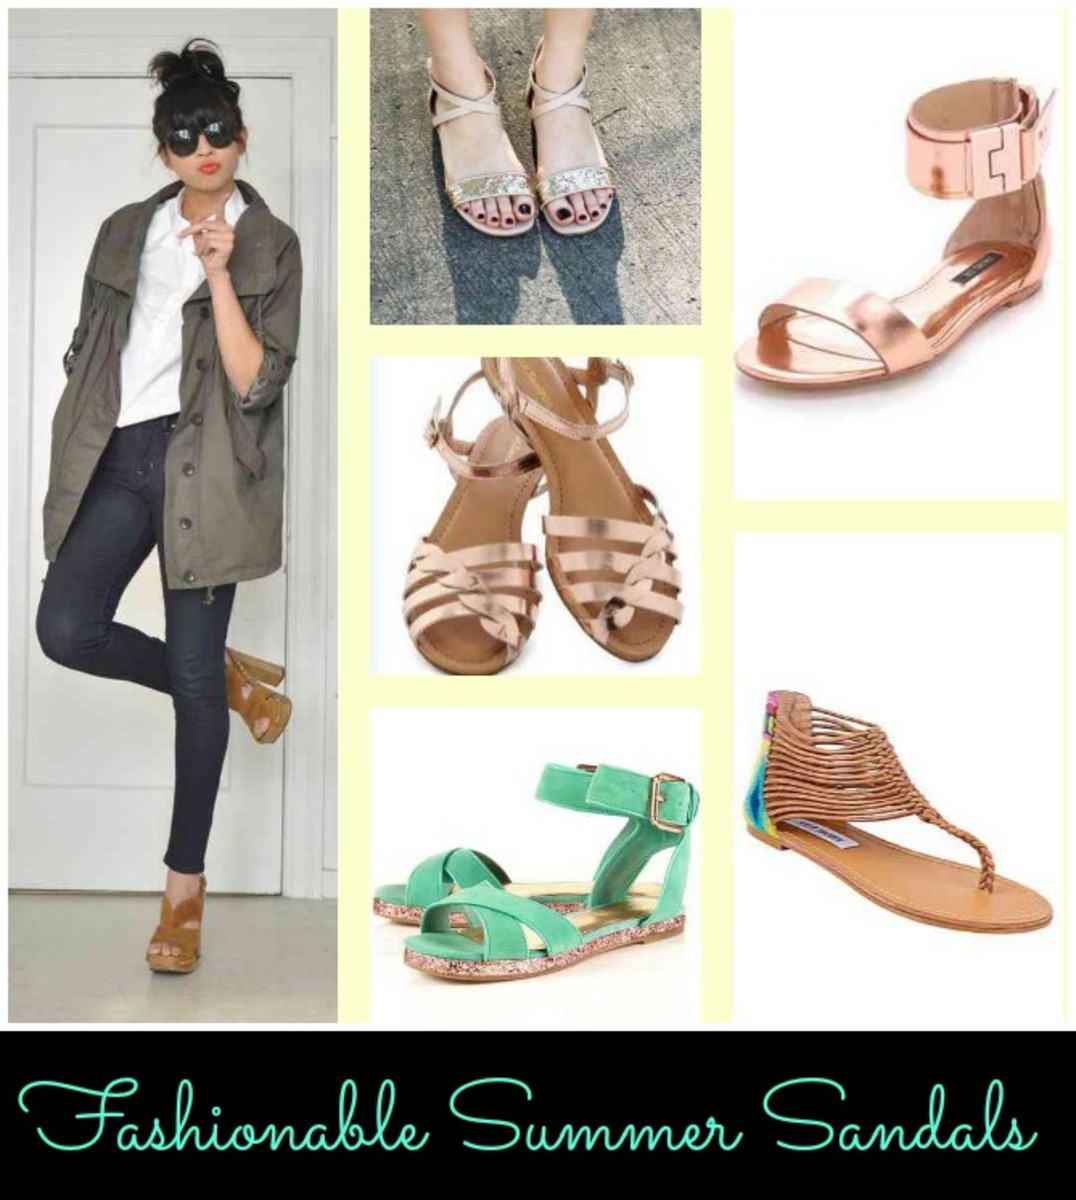 Fashionable Summer Sandals